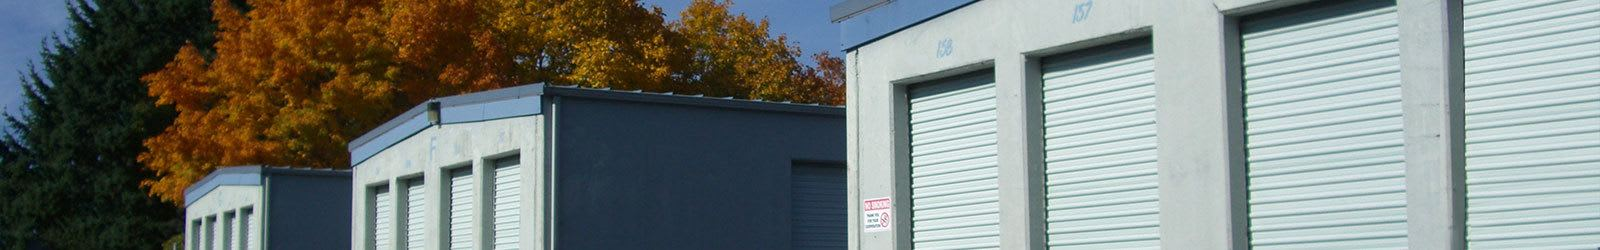 Reviews of self storage in Vancouver, WA